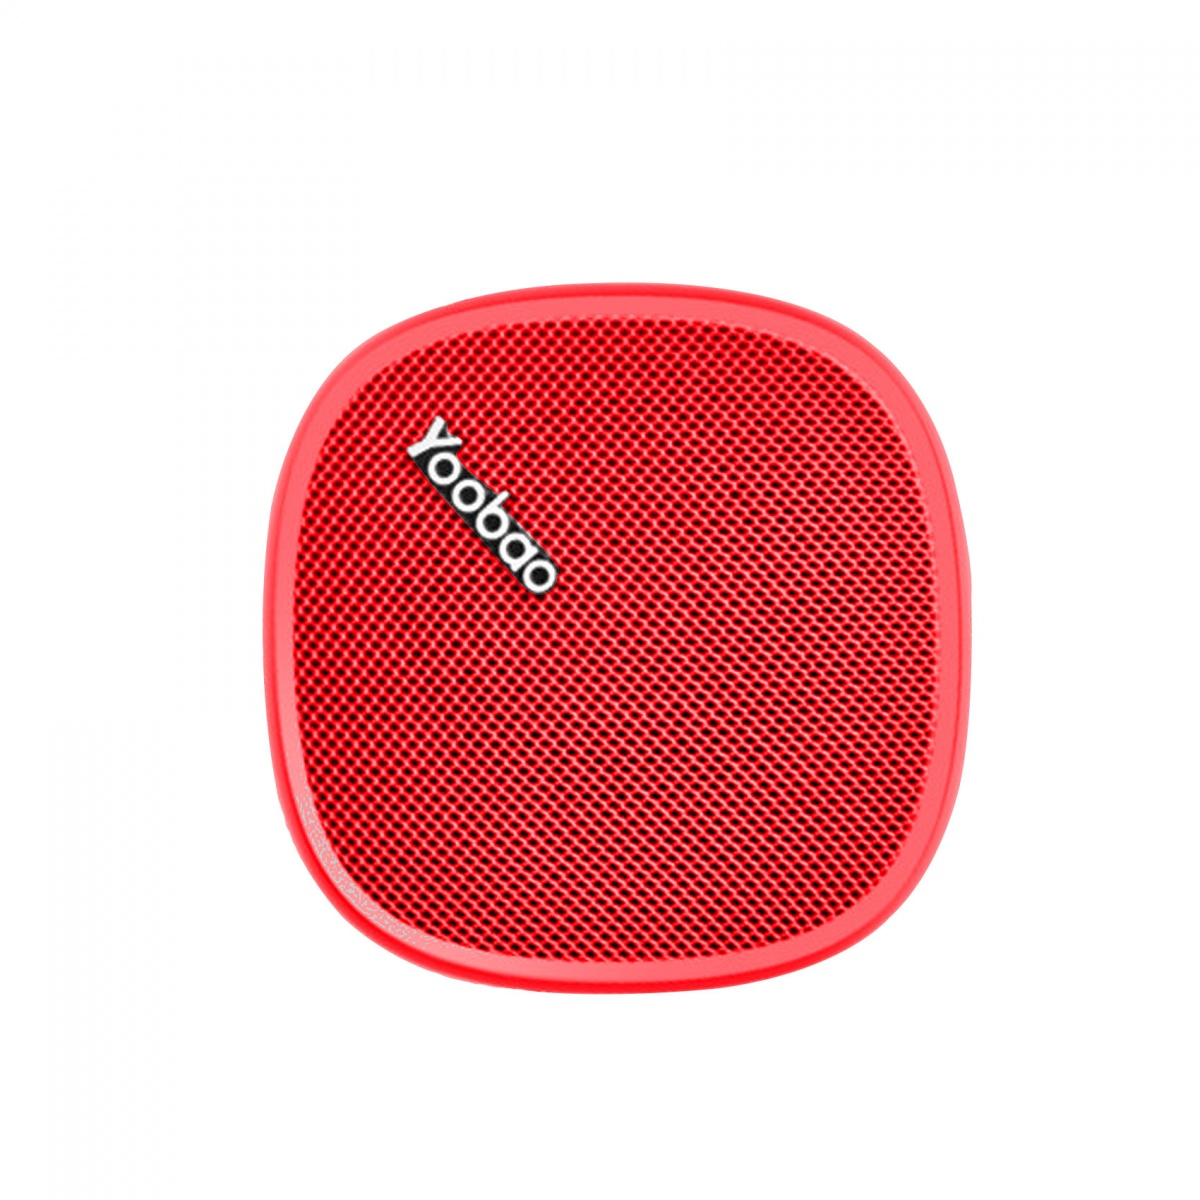 Yoobao M1 Portable Bluetooth Speaker – Red 5